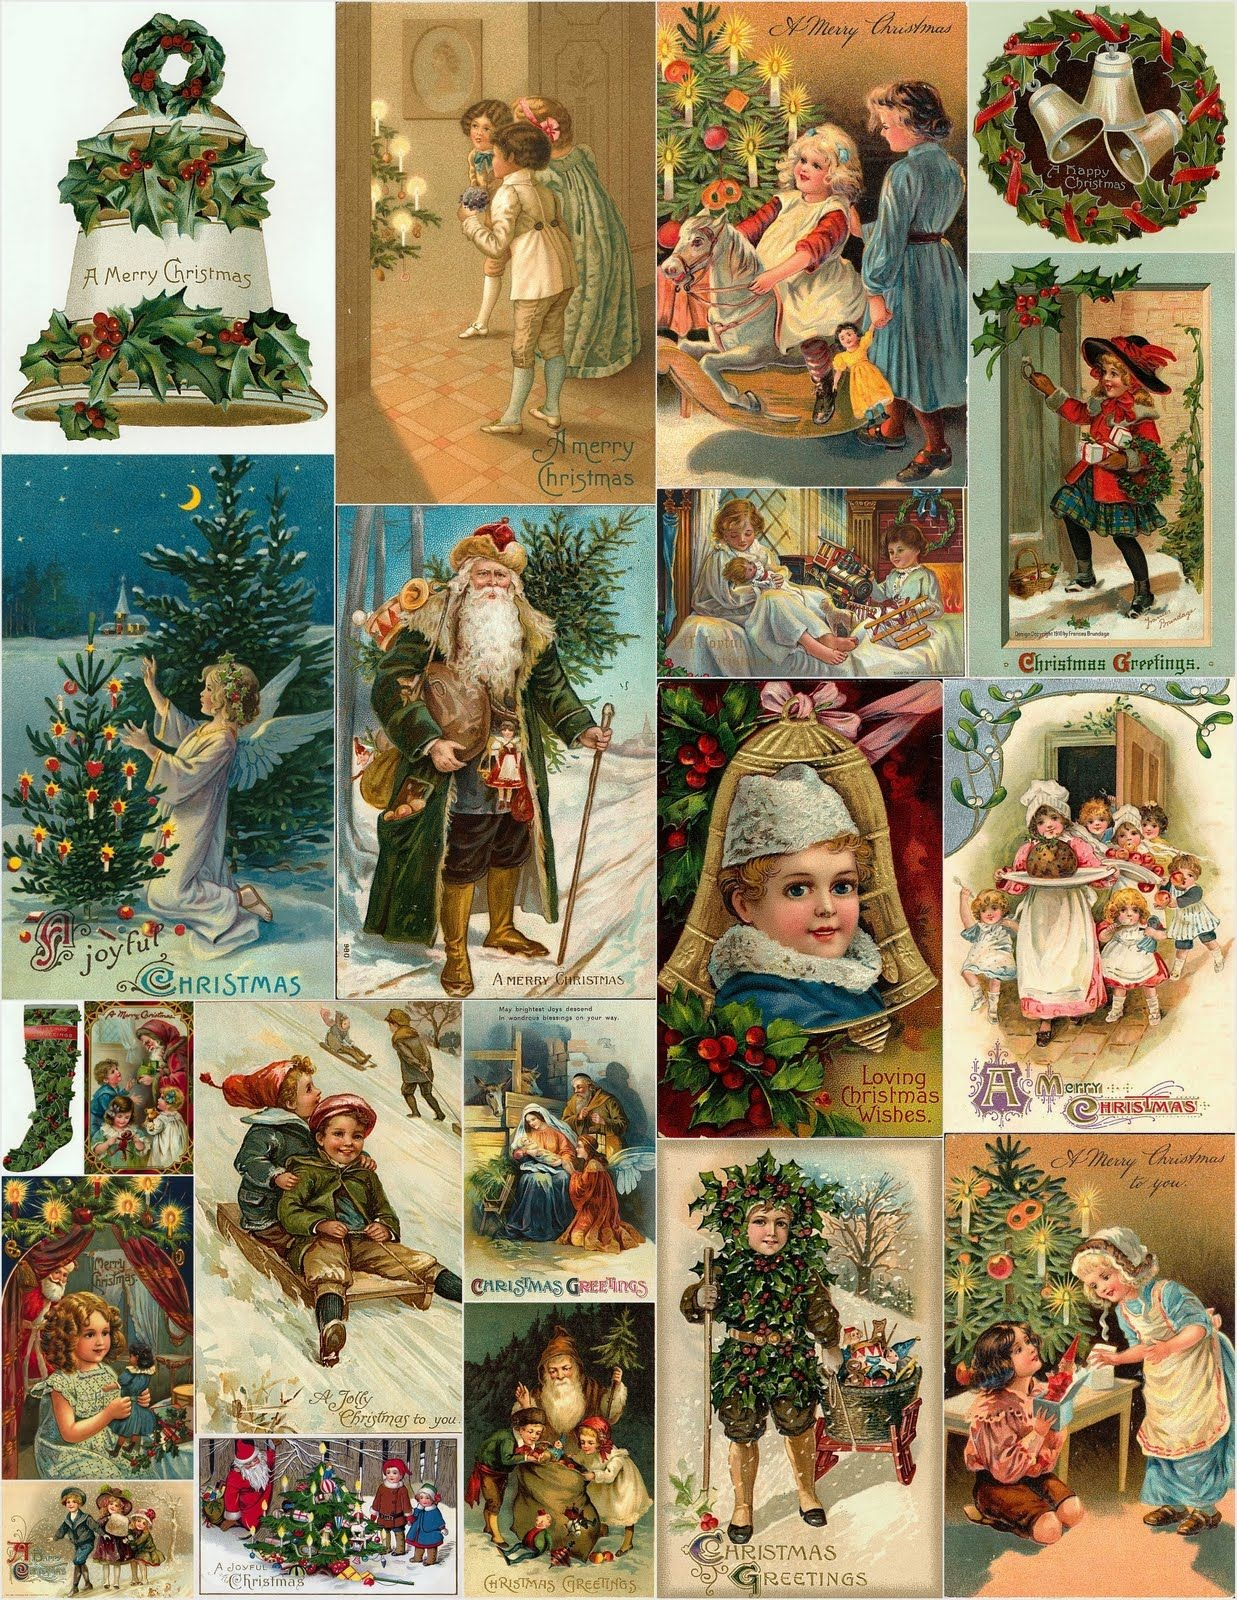 Magic Moonlight Free Images: Christmas Collages For You! | Scraps Of - Free Printable Christmas Photo Collage